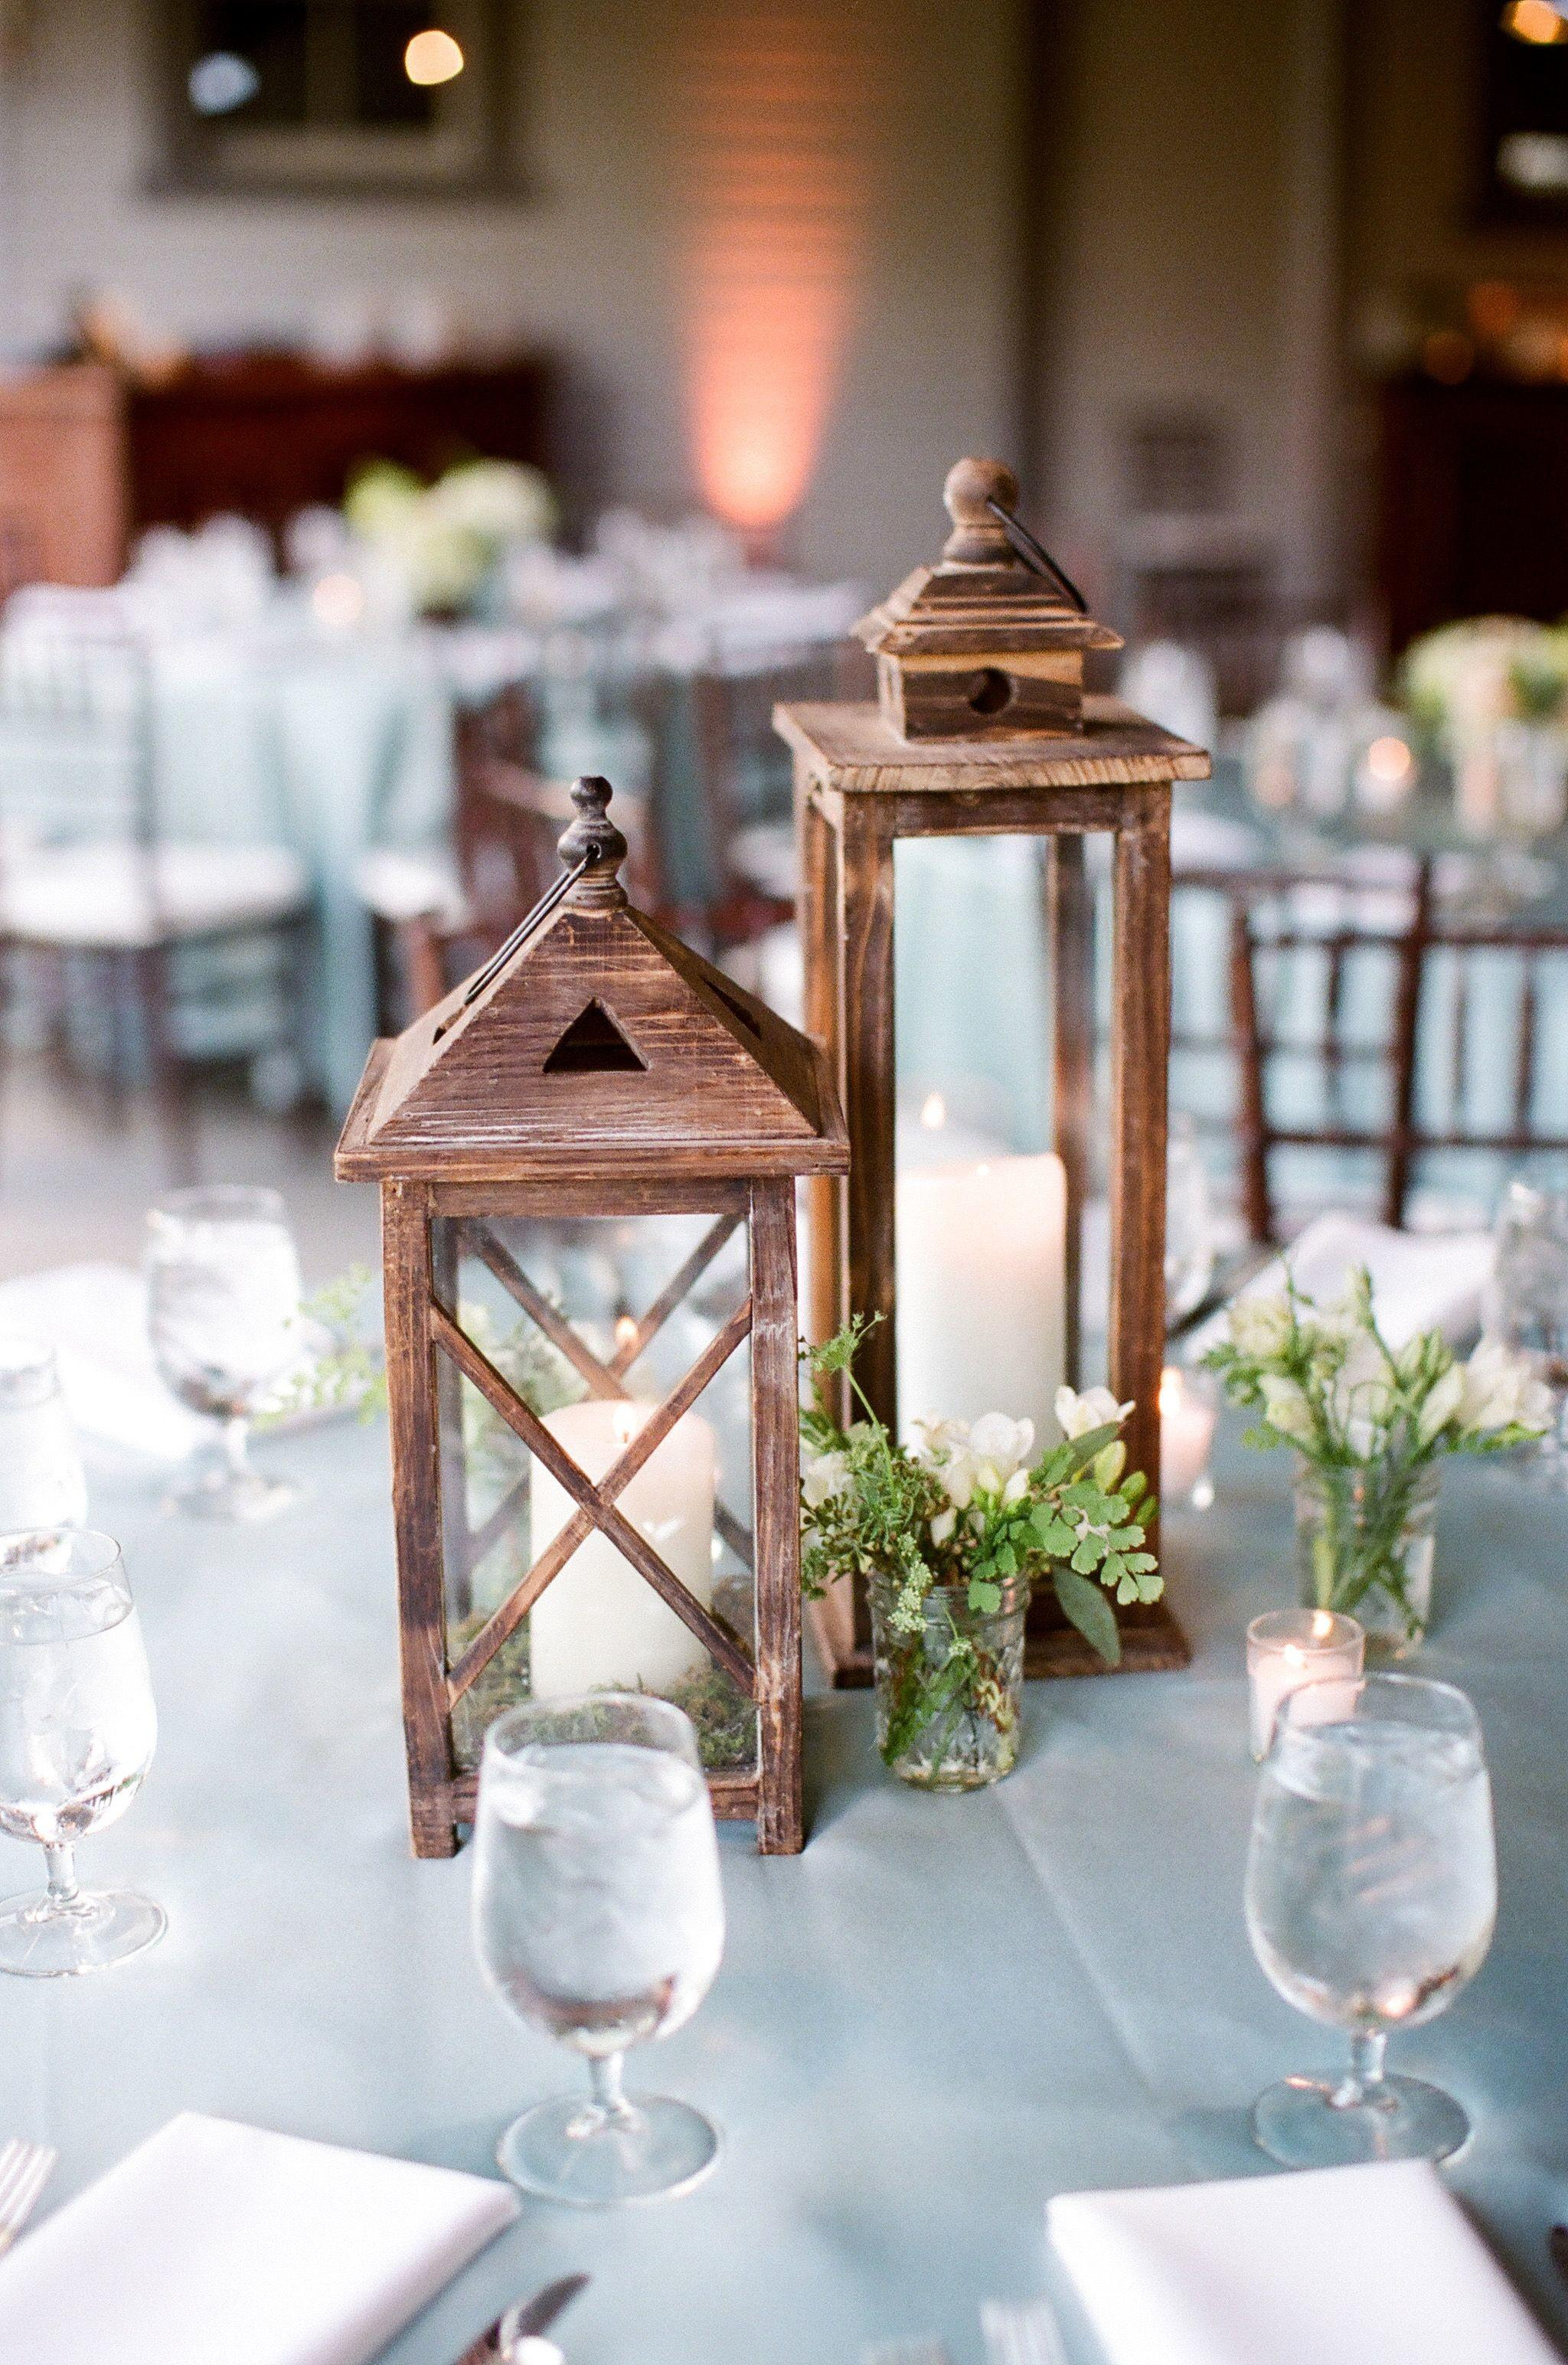 Cornflower Blue Tables Lantern Centerpieces